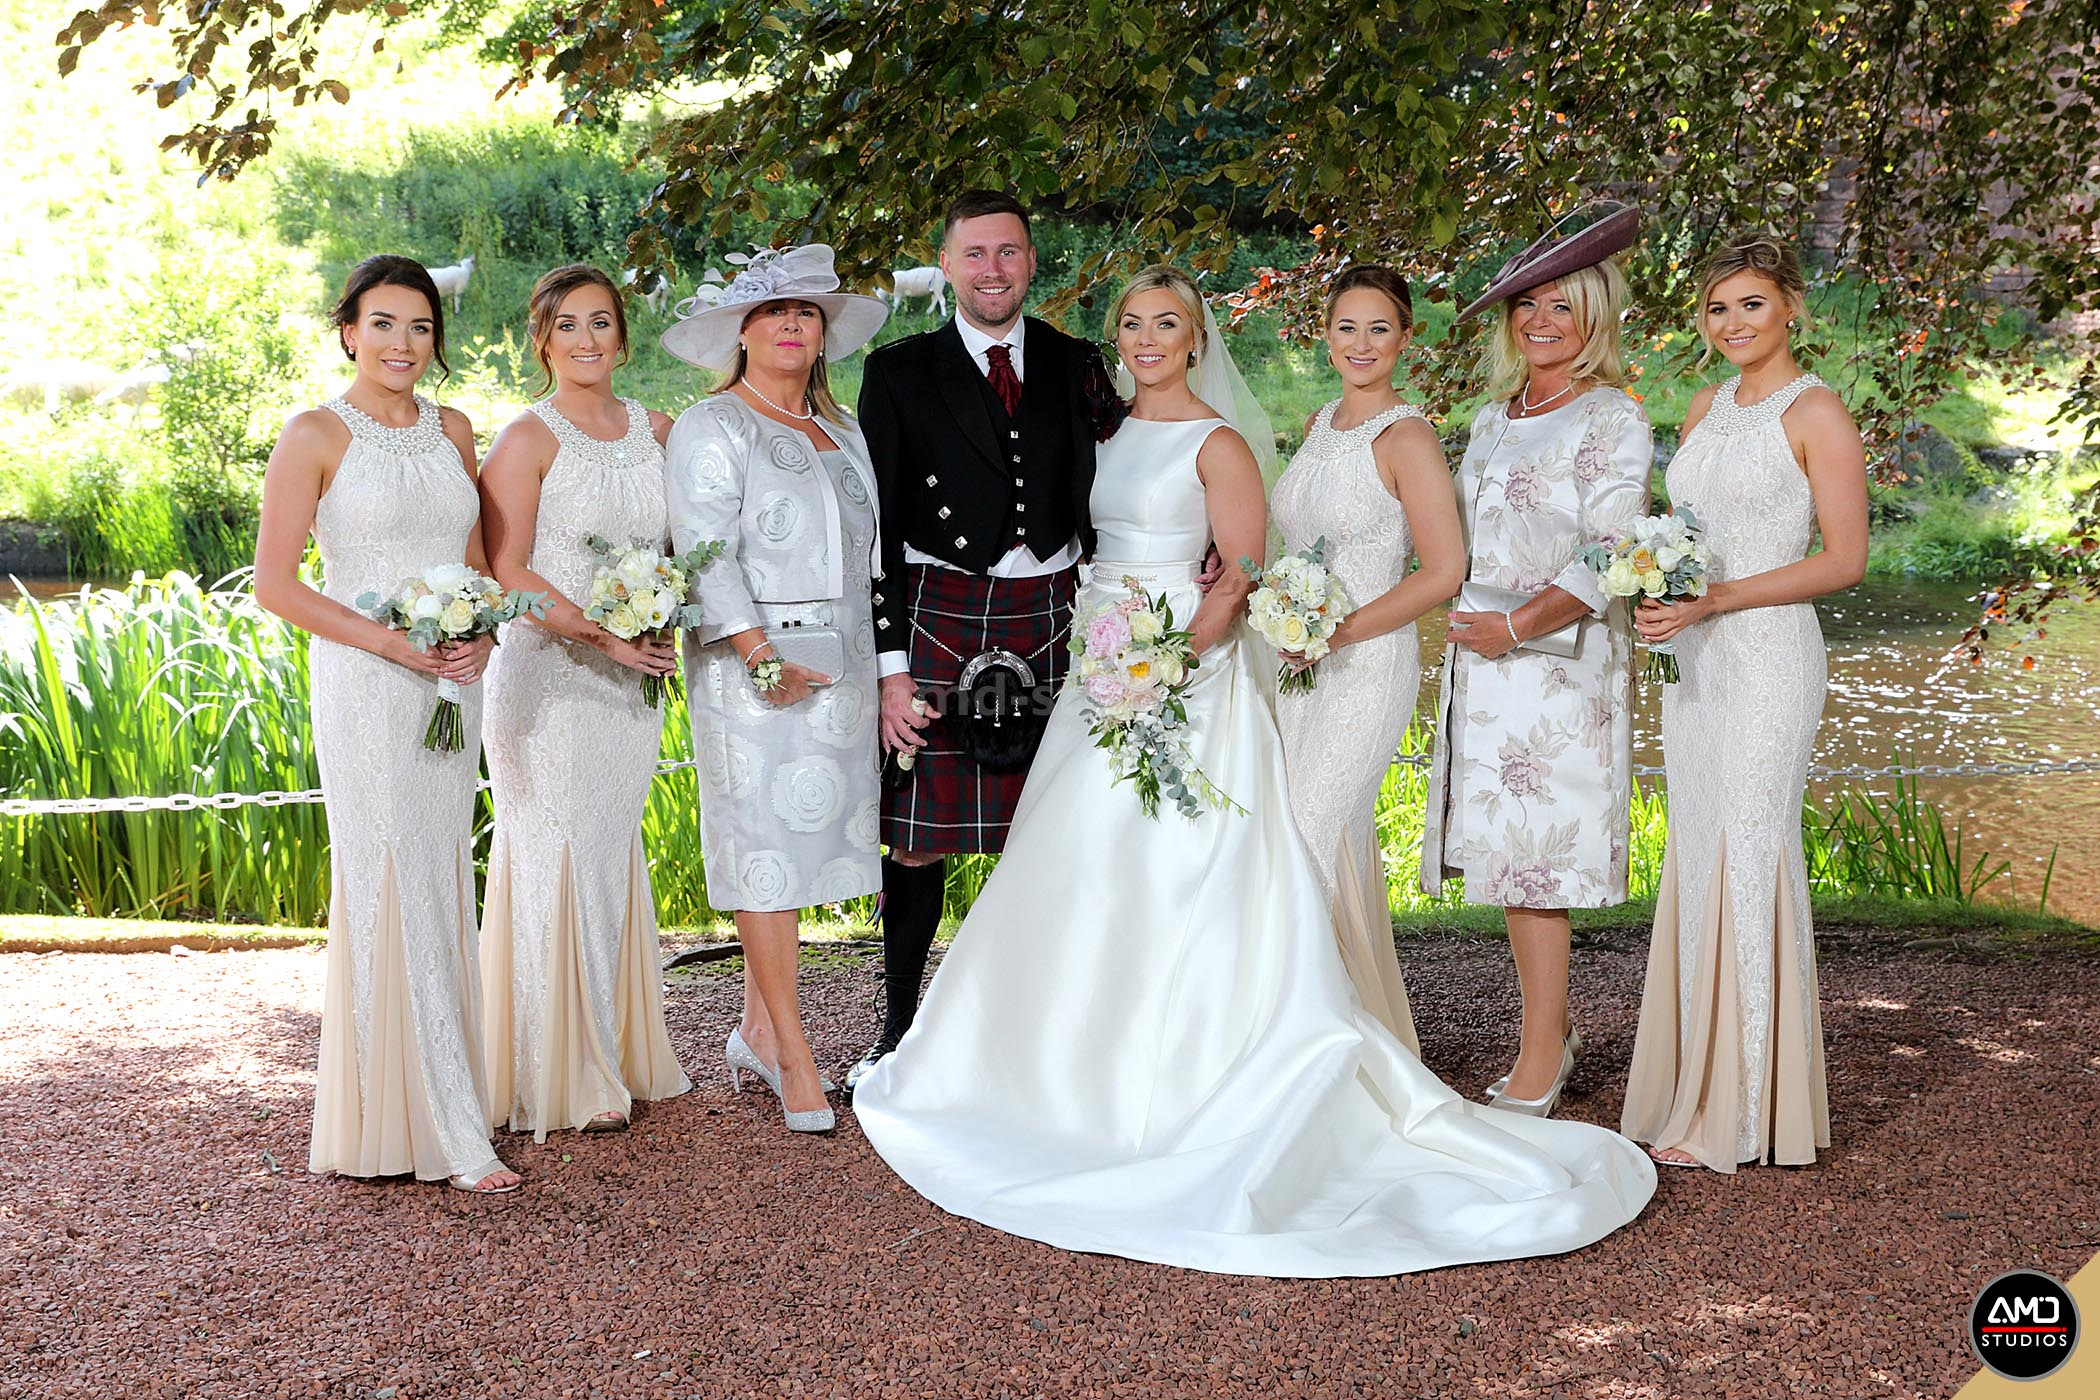 Wedding photography at The Brig O'Doon House Hotel by AMD Studios